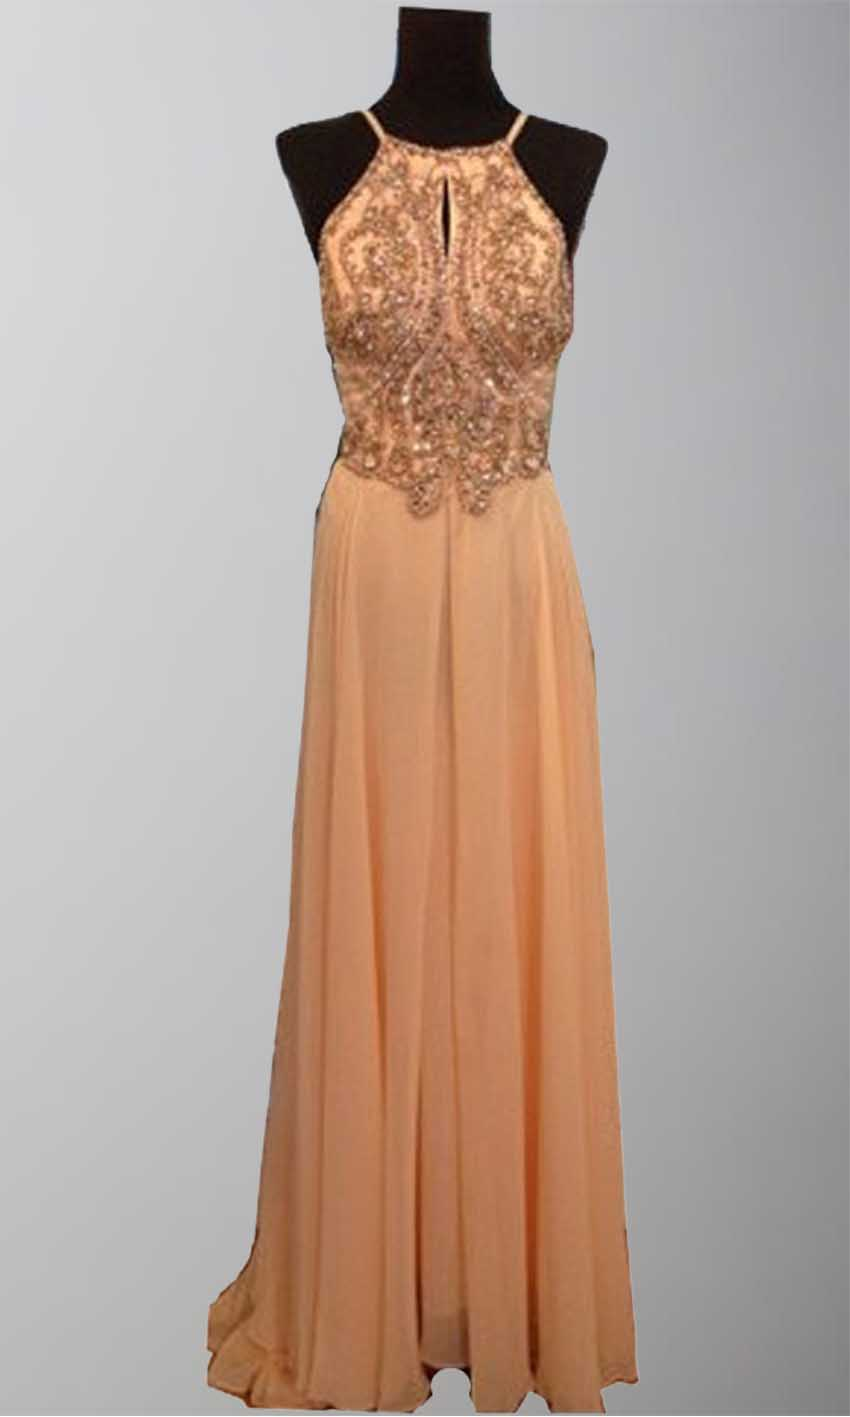 £105.00 : cheap prom dresses uk, bridesmaid dresses, 2014 prom & evening dresses, look for cheap elegant prom dresses 2014, cocktail gowns, or dresses for special occasions? kissprom.co.uk offers various bridesmaid dresses, evening dress, free shipping to uk etc.